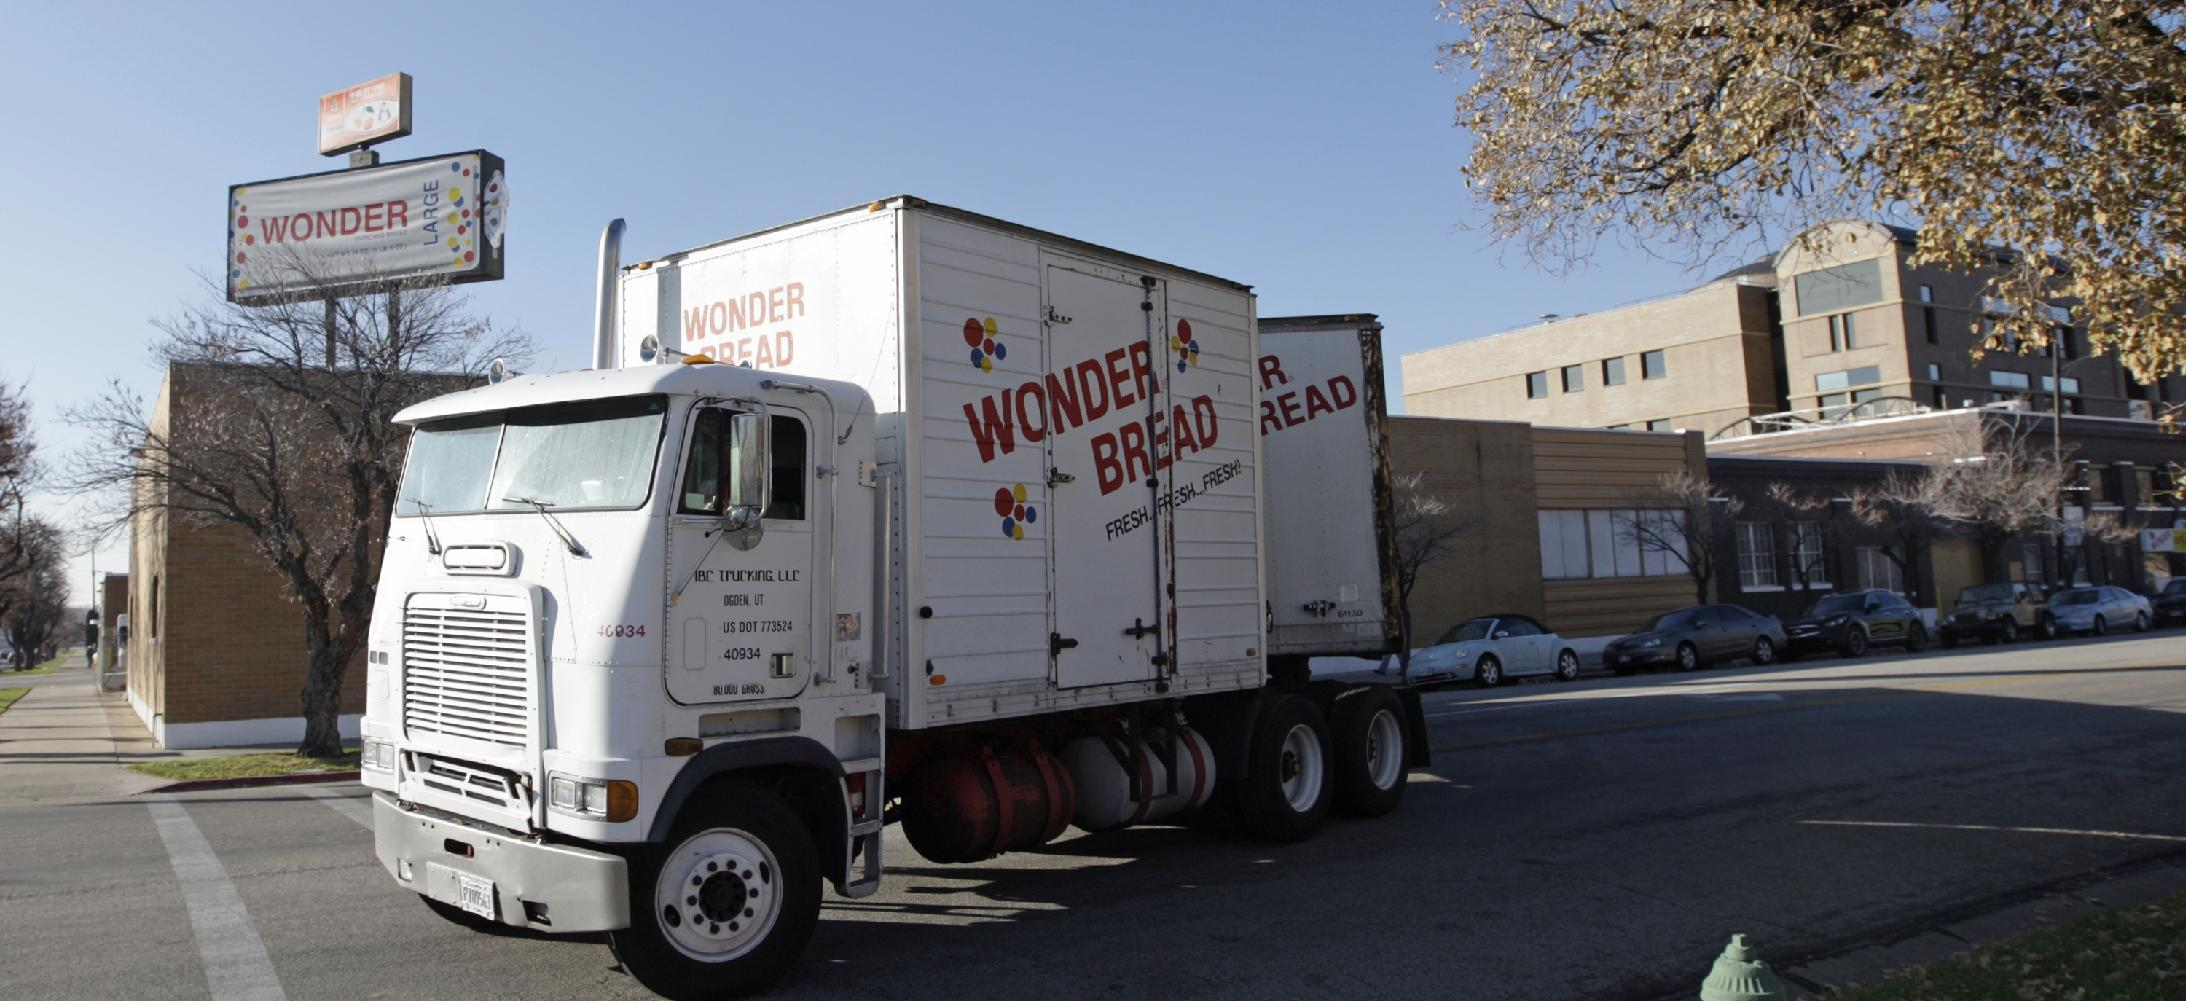 A Wonder Bread truck pulls out of the Utah Hostess plant in Ogden, Utah, Thursday, Nov. 15, 2012. Hostess Brands Inc. said it likely won't make an announcement until Friday morning on whether it will move to liquidate its business, after the company had set a Thursday deadline for striking employees to return to work. The maker of Twinkies, Ding Dongs and Wonder Bread said Thursday it will file a motion in U.S. Bankruptcy Court to shutter operations if enough workers don't return by 5 p.m. EST. That would result in the loss of about 18,000 jobs, including hundreds in Ogden. (AP Photo/Rick Bowmer)